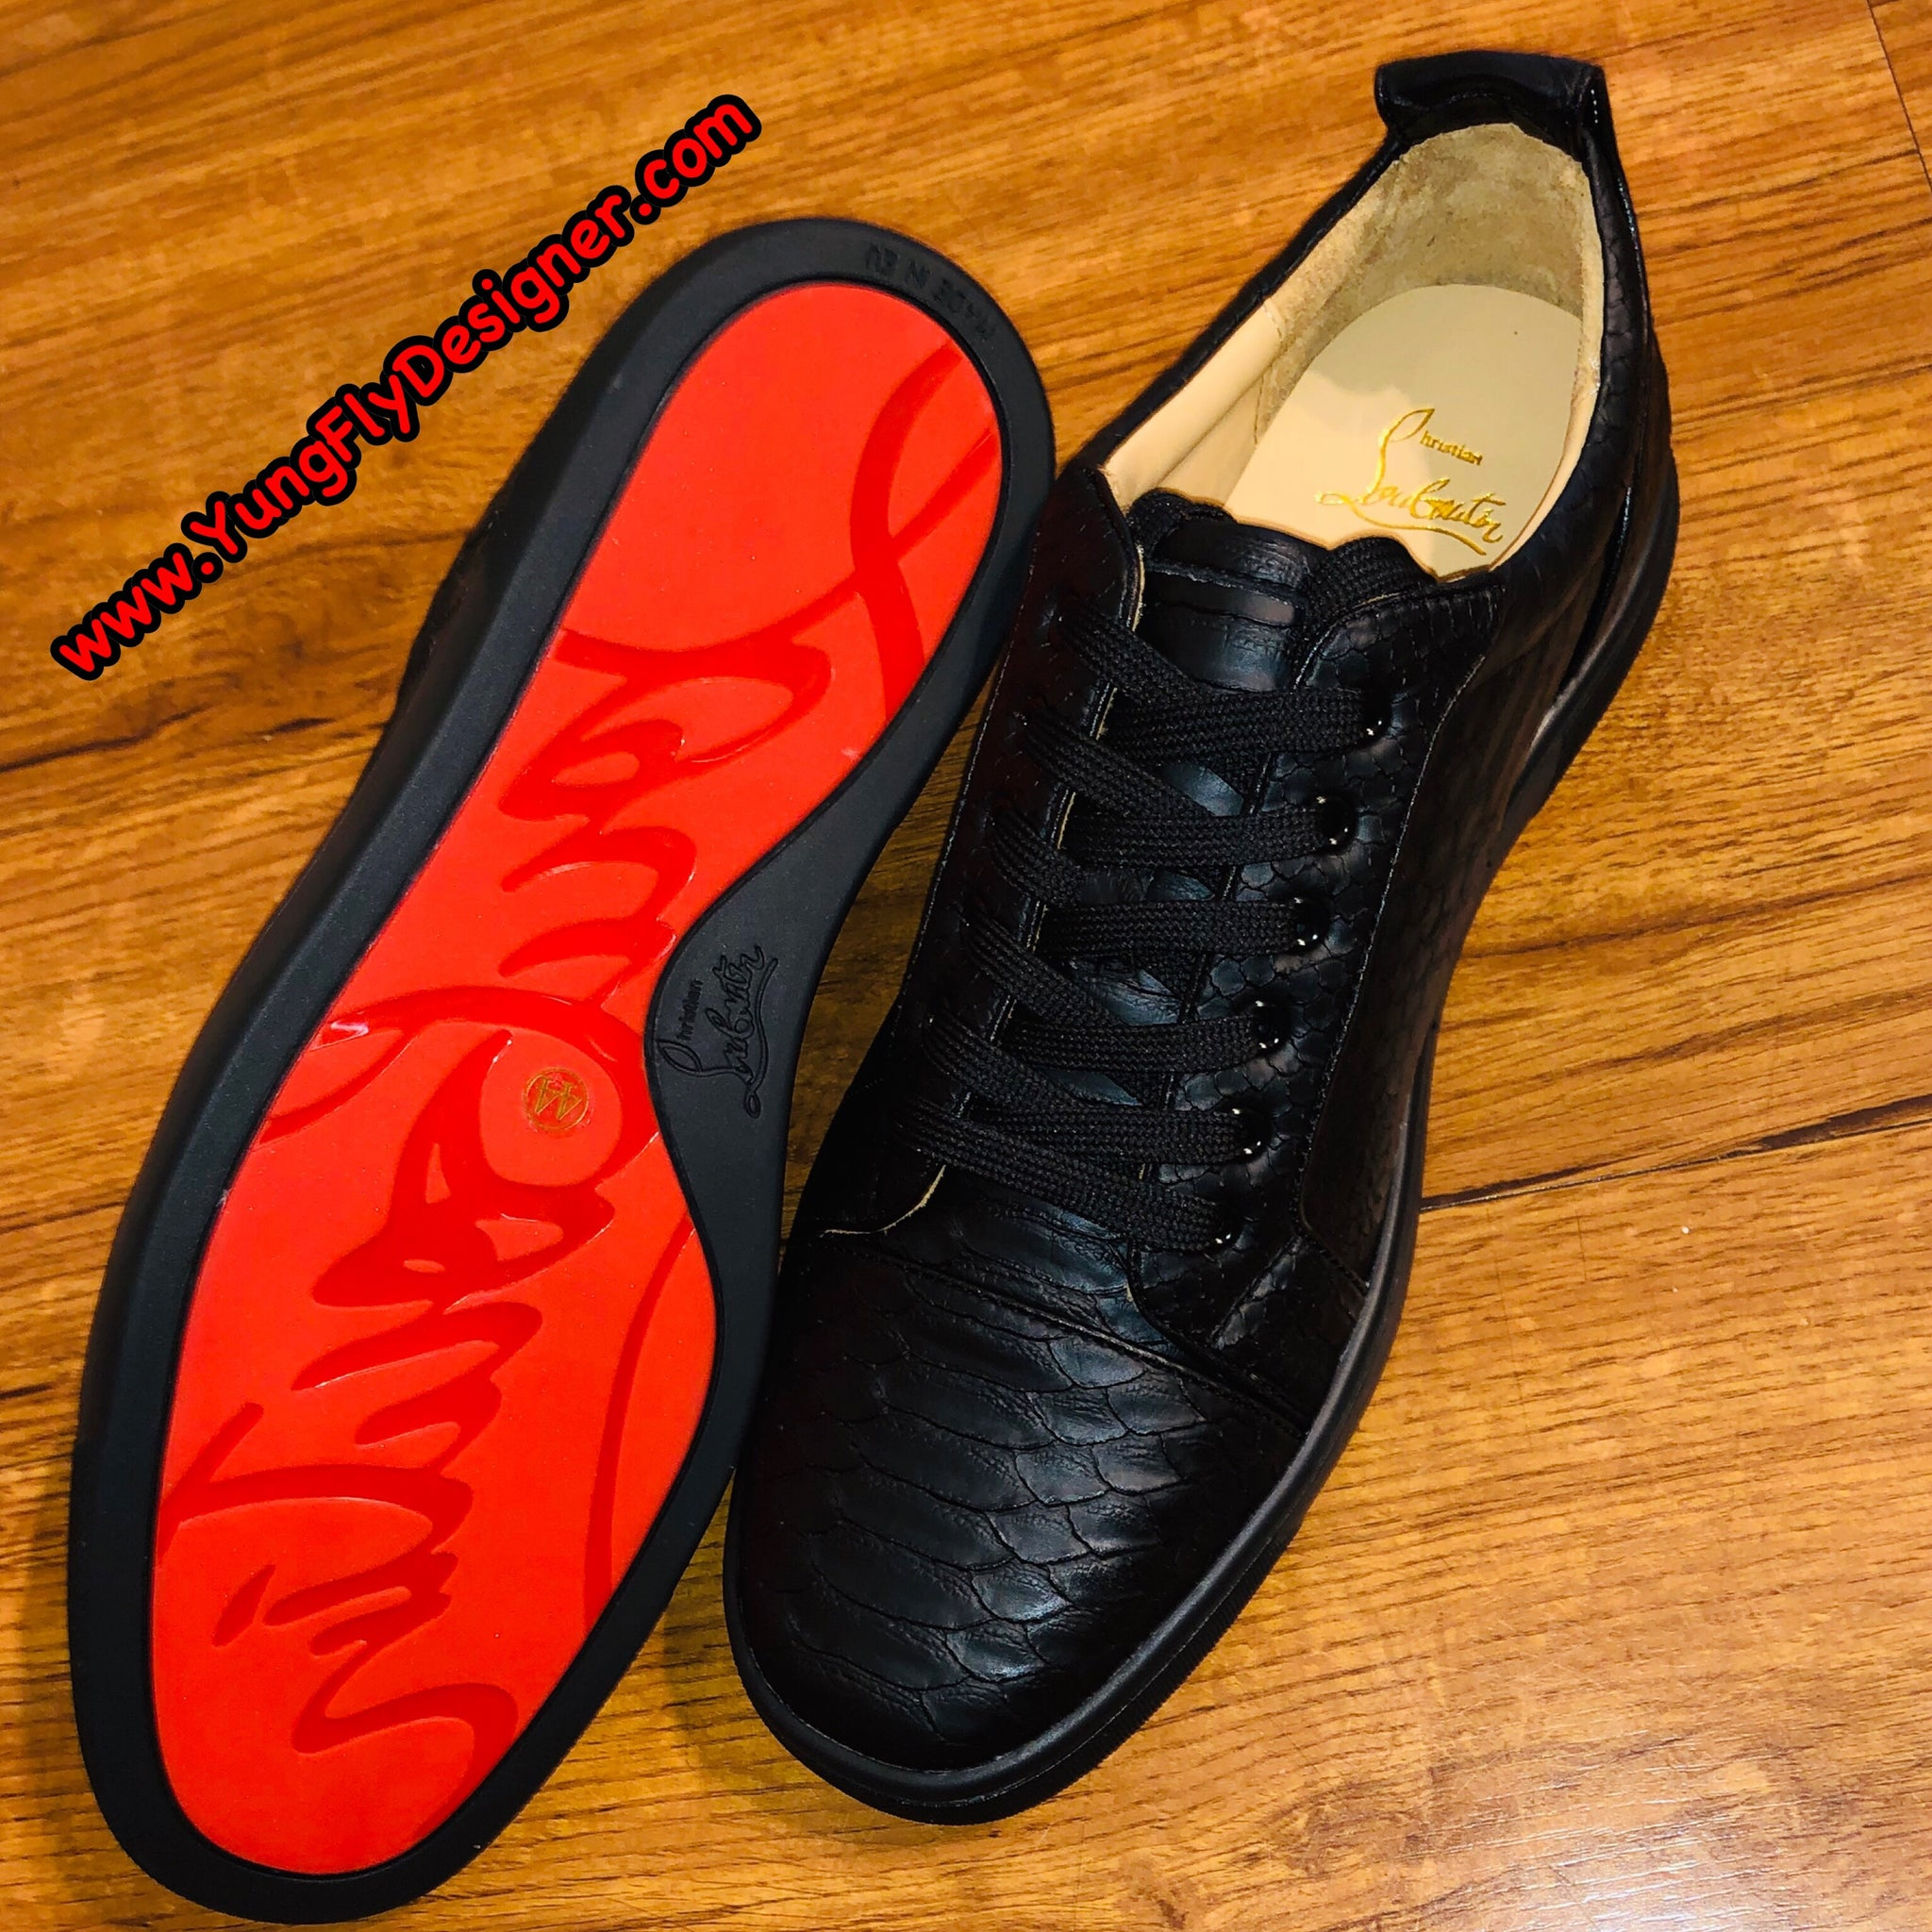 wholesale dealer fee29 6ff4b Black Snake Skin Christian Louboutin - $345.00 – Young Fly ...